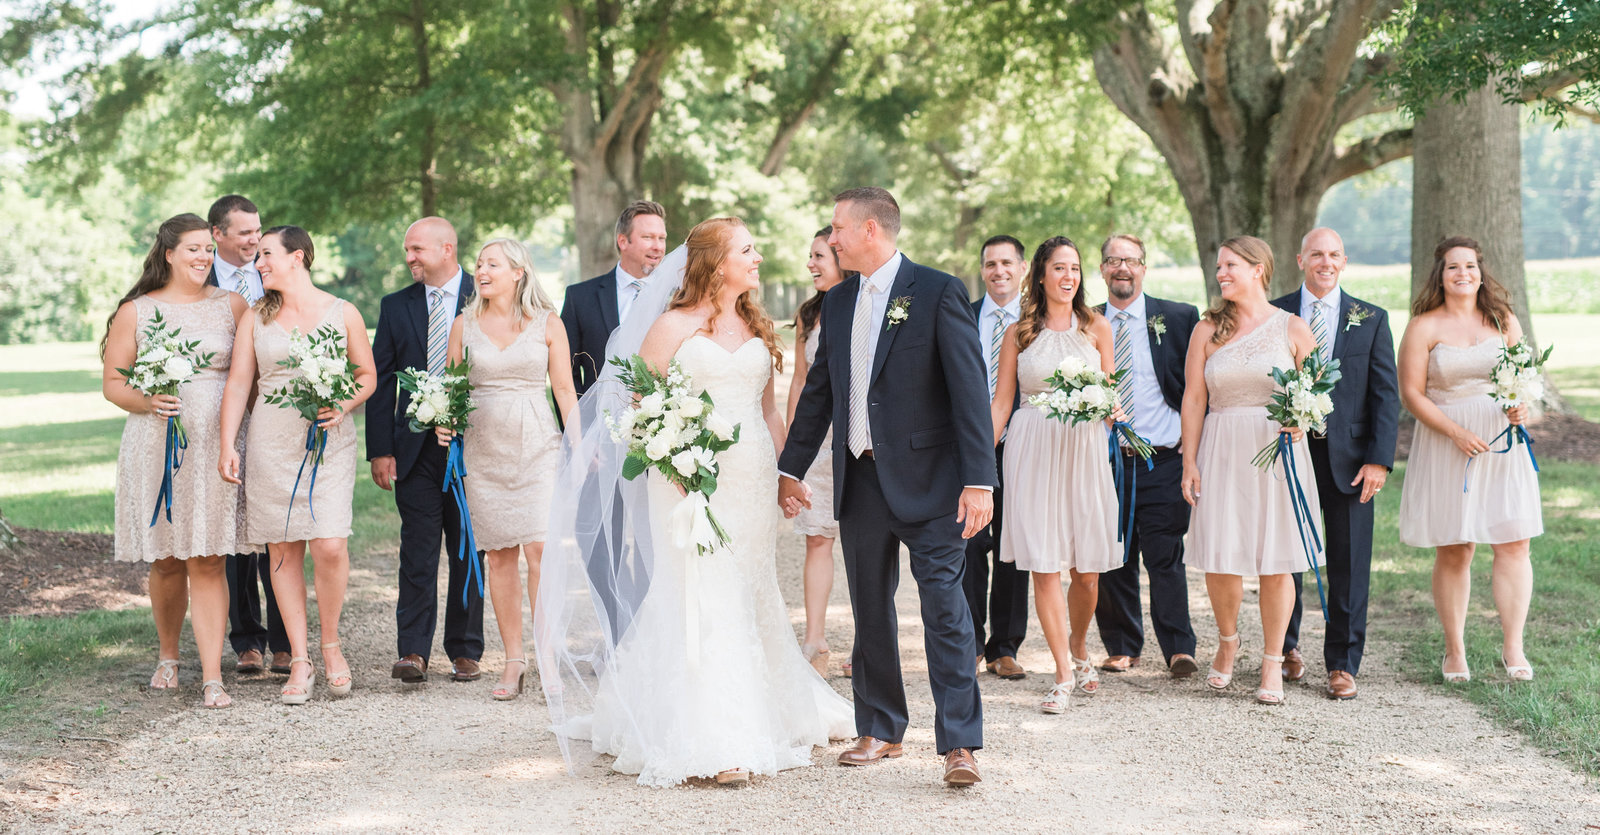 nuetral southern wedding party colors on tree lined driveway at historic virginia plantation